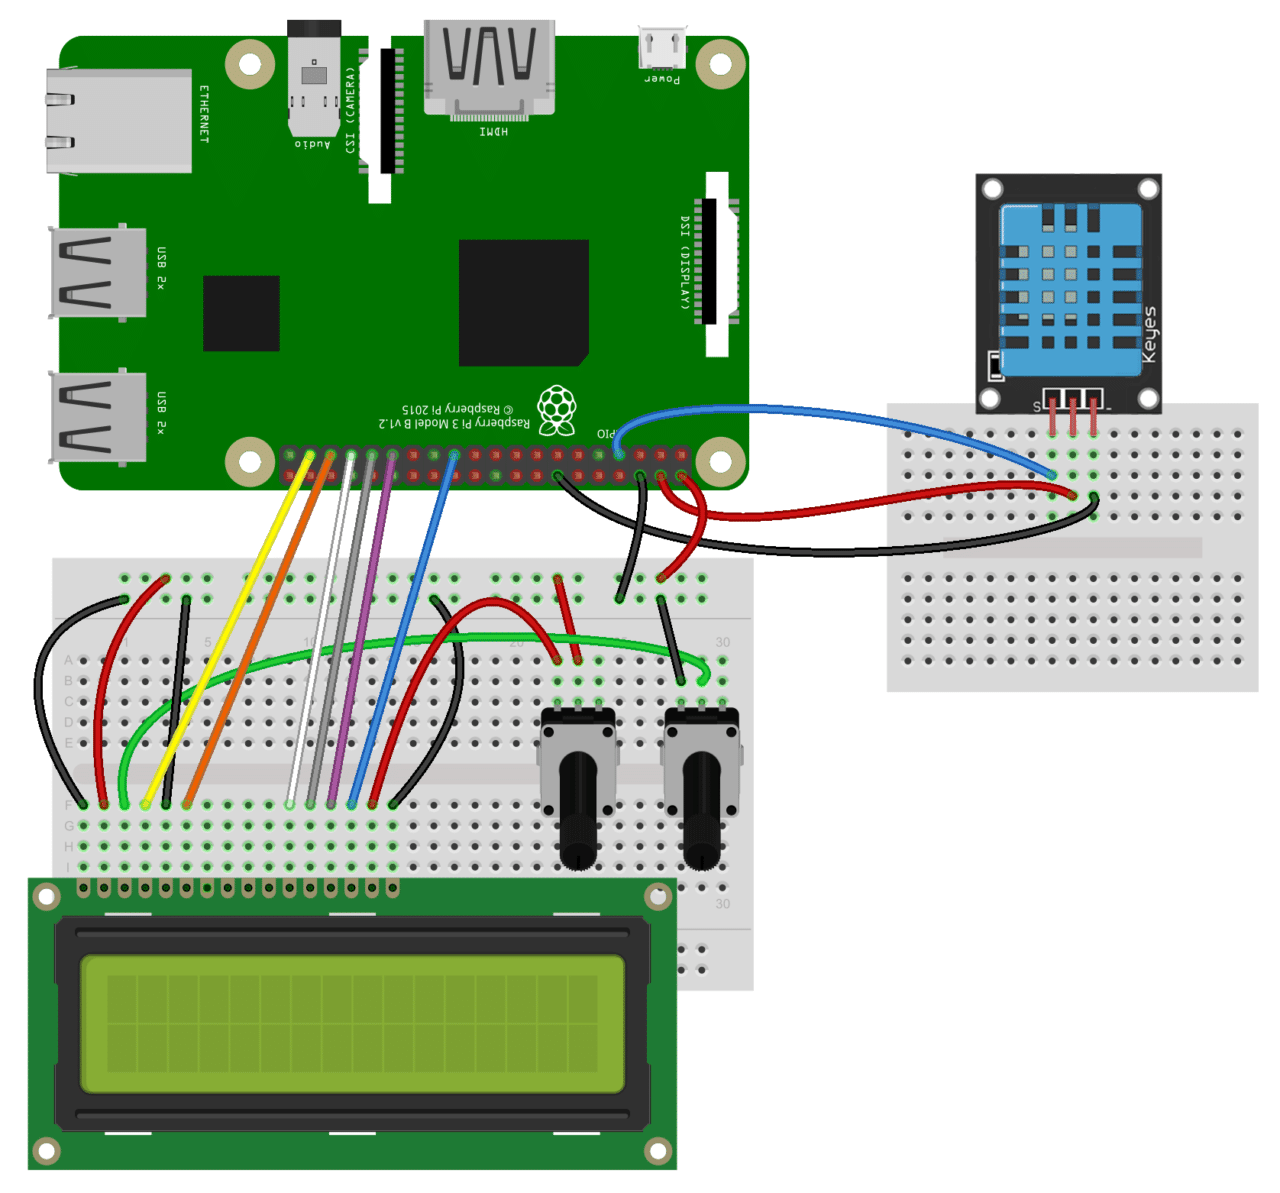 How To Set Up The Dht11 Humidity Sensor On Raspberry Pi Temperature Controller Wiring As Well For Lcd Output